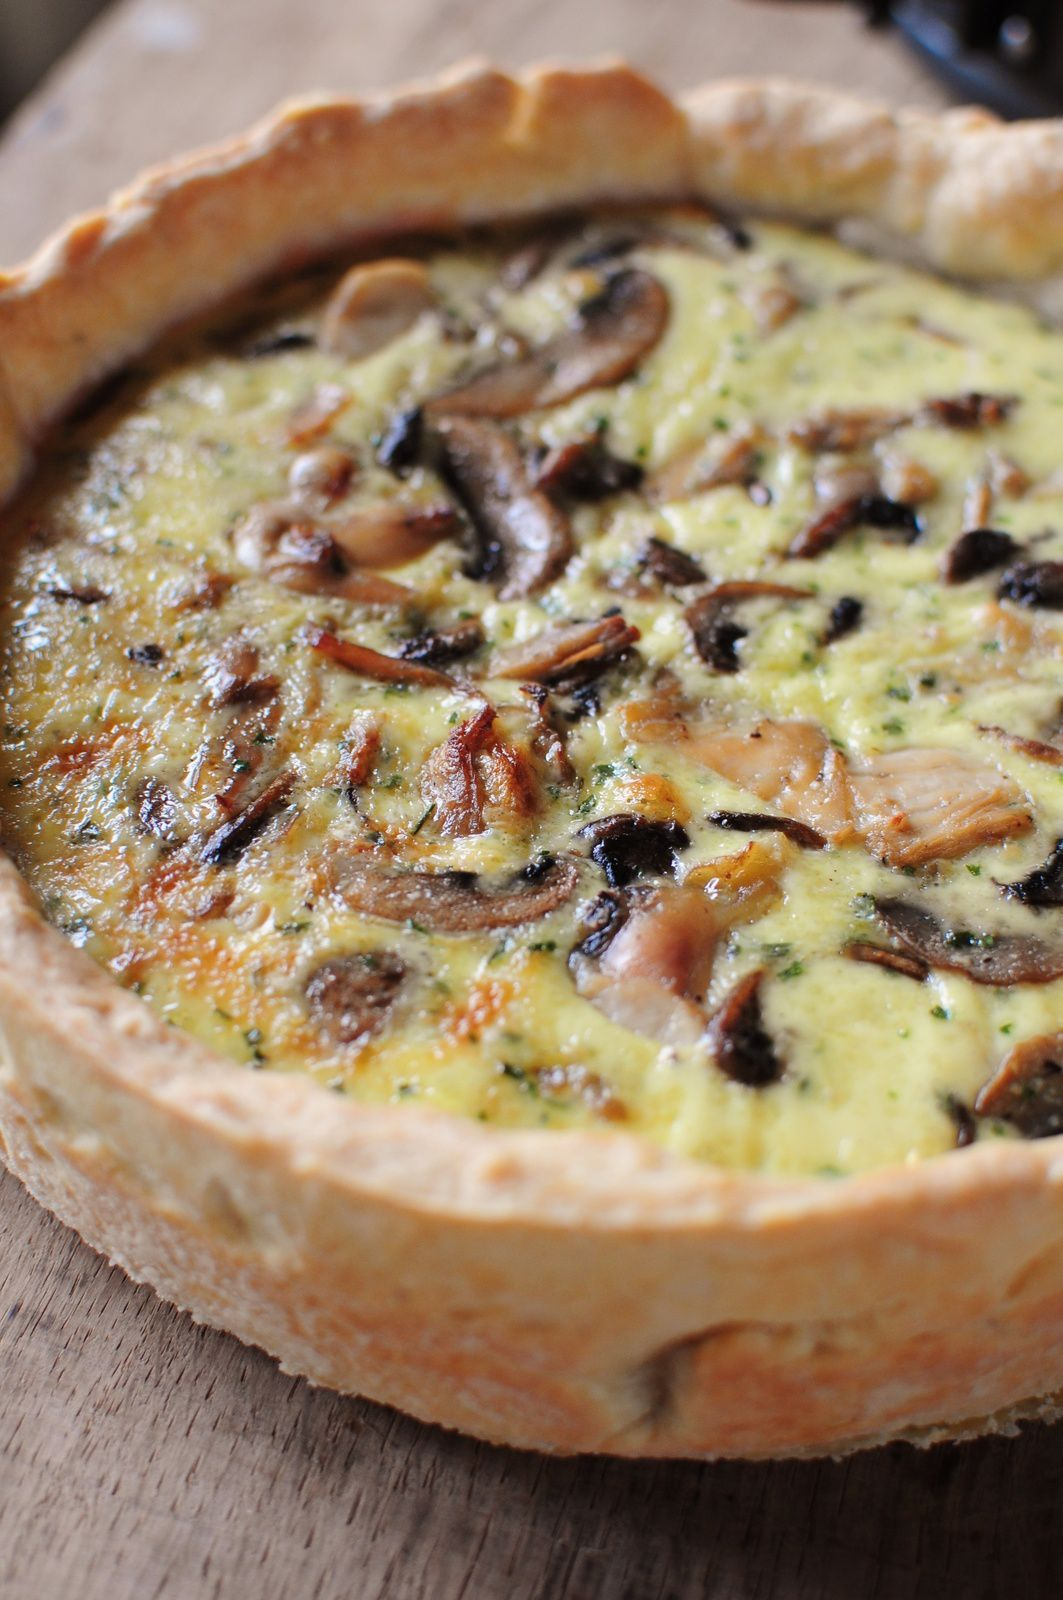 quiche champignons poulet blog de cuisine cr ative recettes popotte de manue. Black Bedroom Furniture Sets. Home Design Ideas